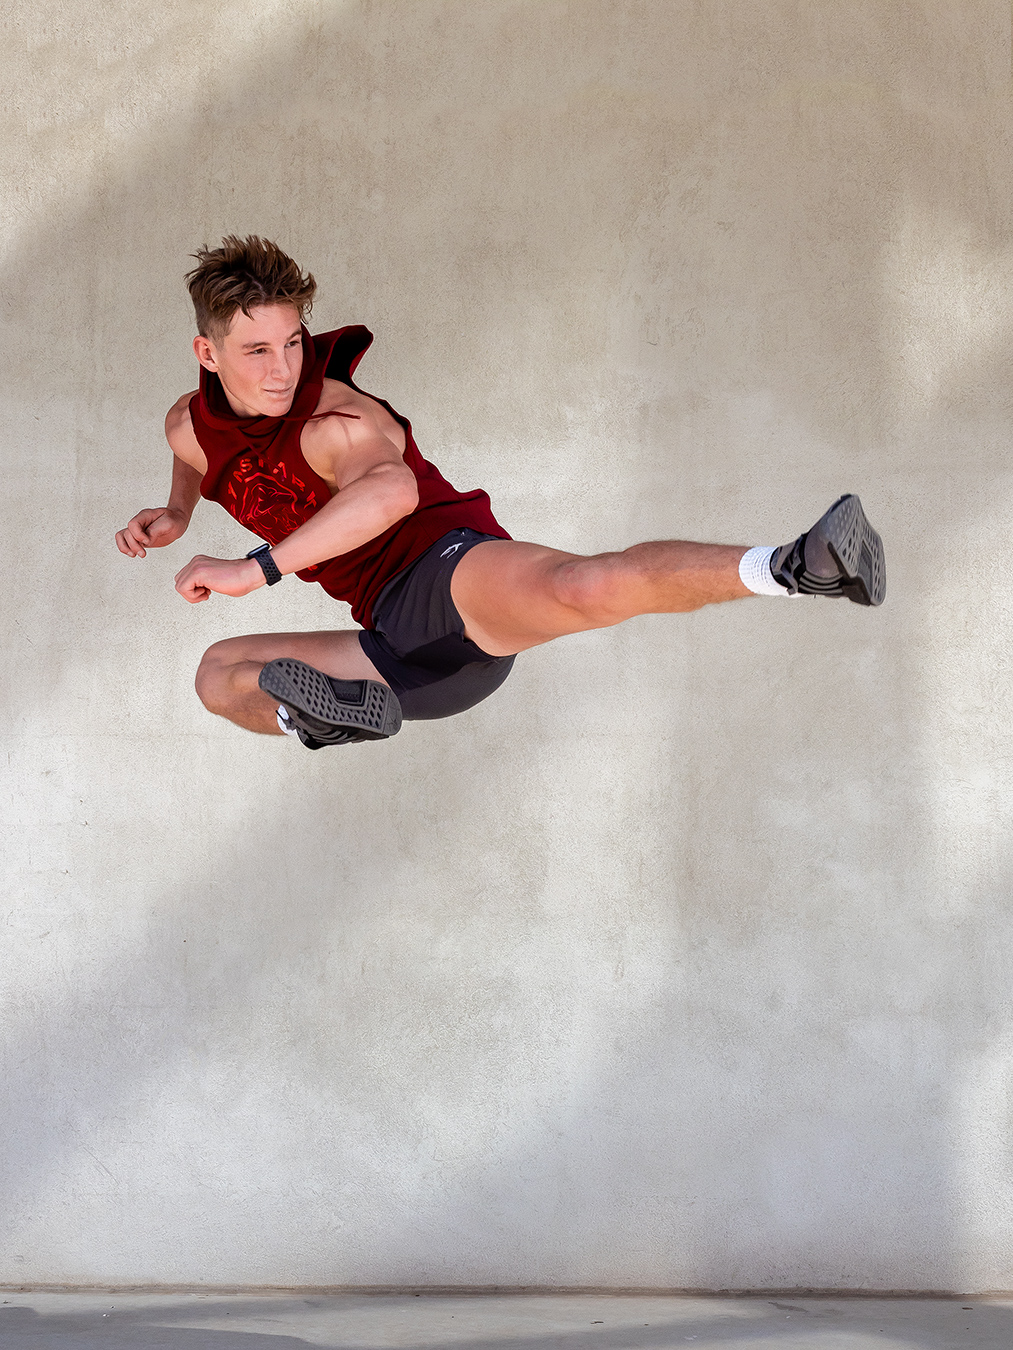 Adelaides young up and coming fitness model Ryan doing a flying side kick